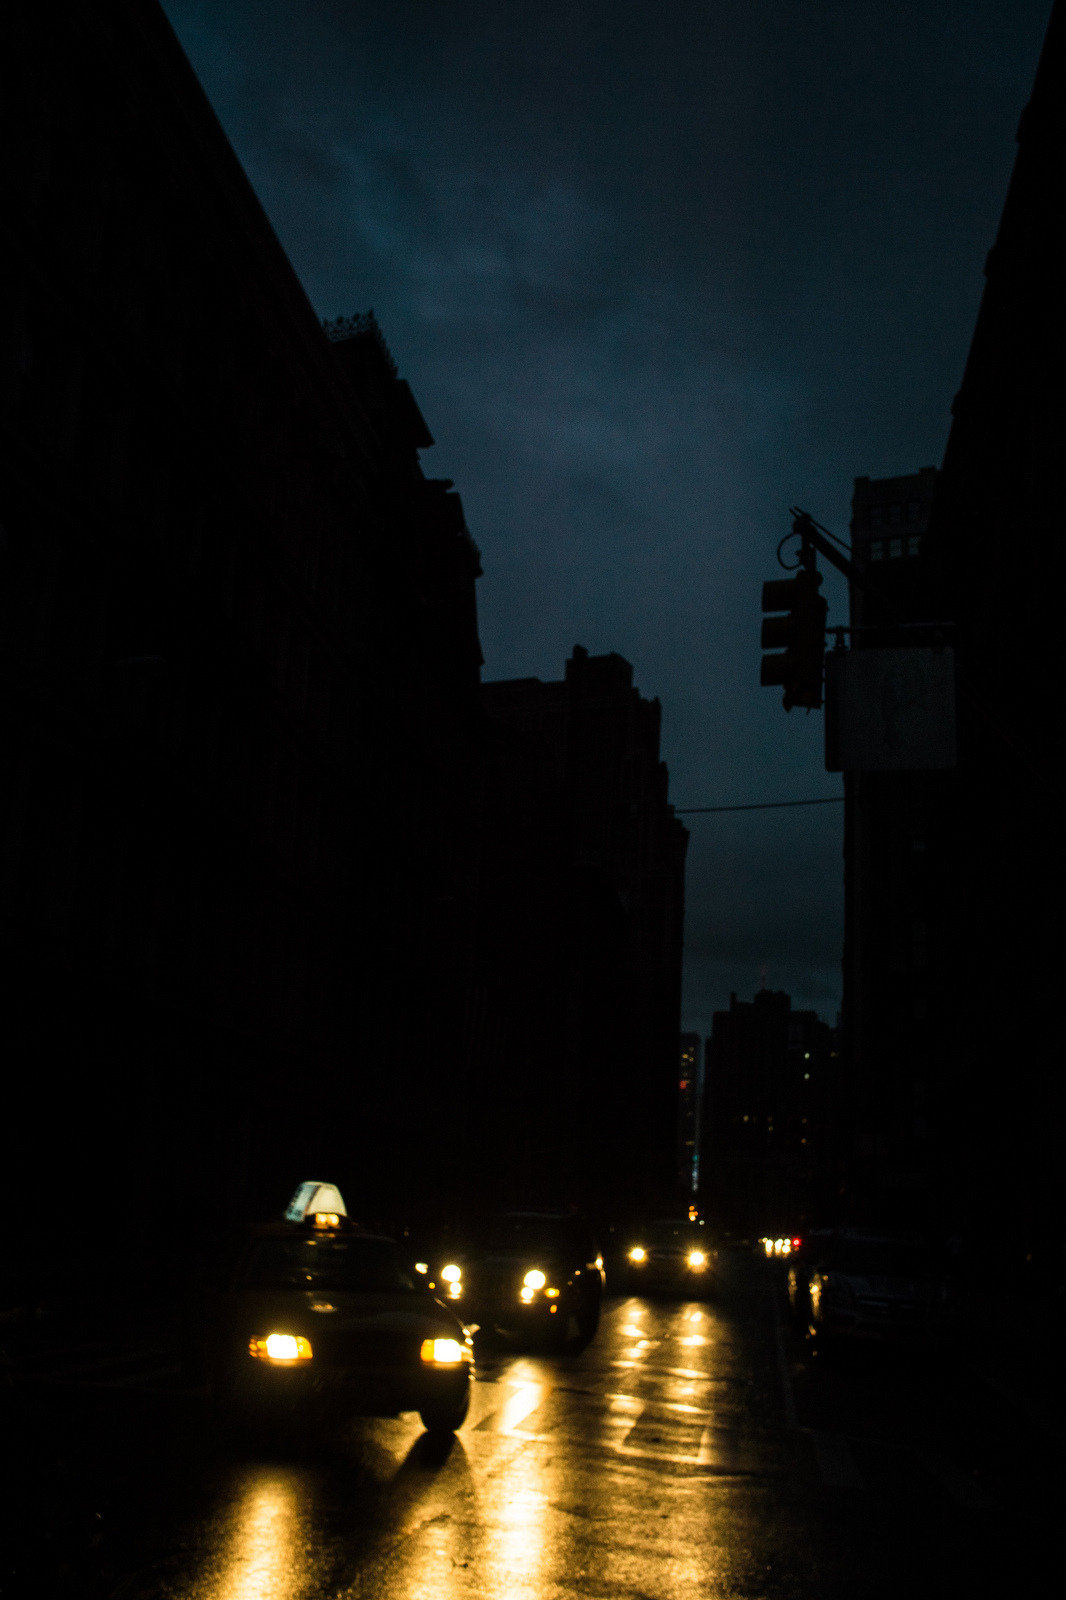 What's scarier than NYC traffic? Traffic without traffic lights. #Sandy